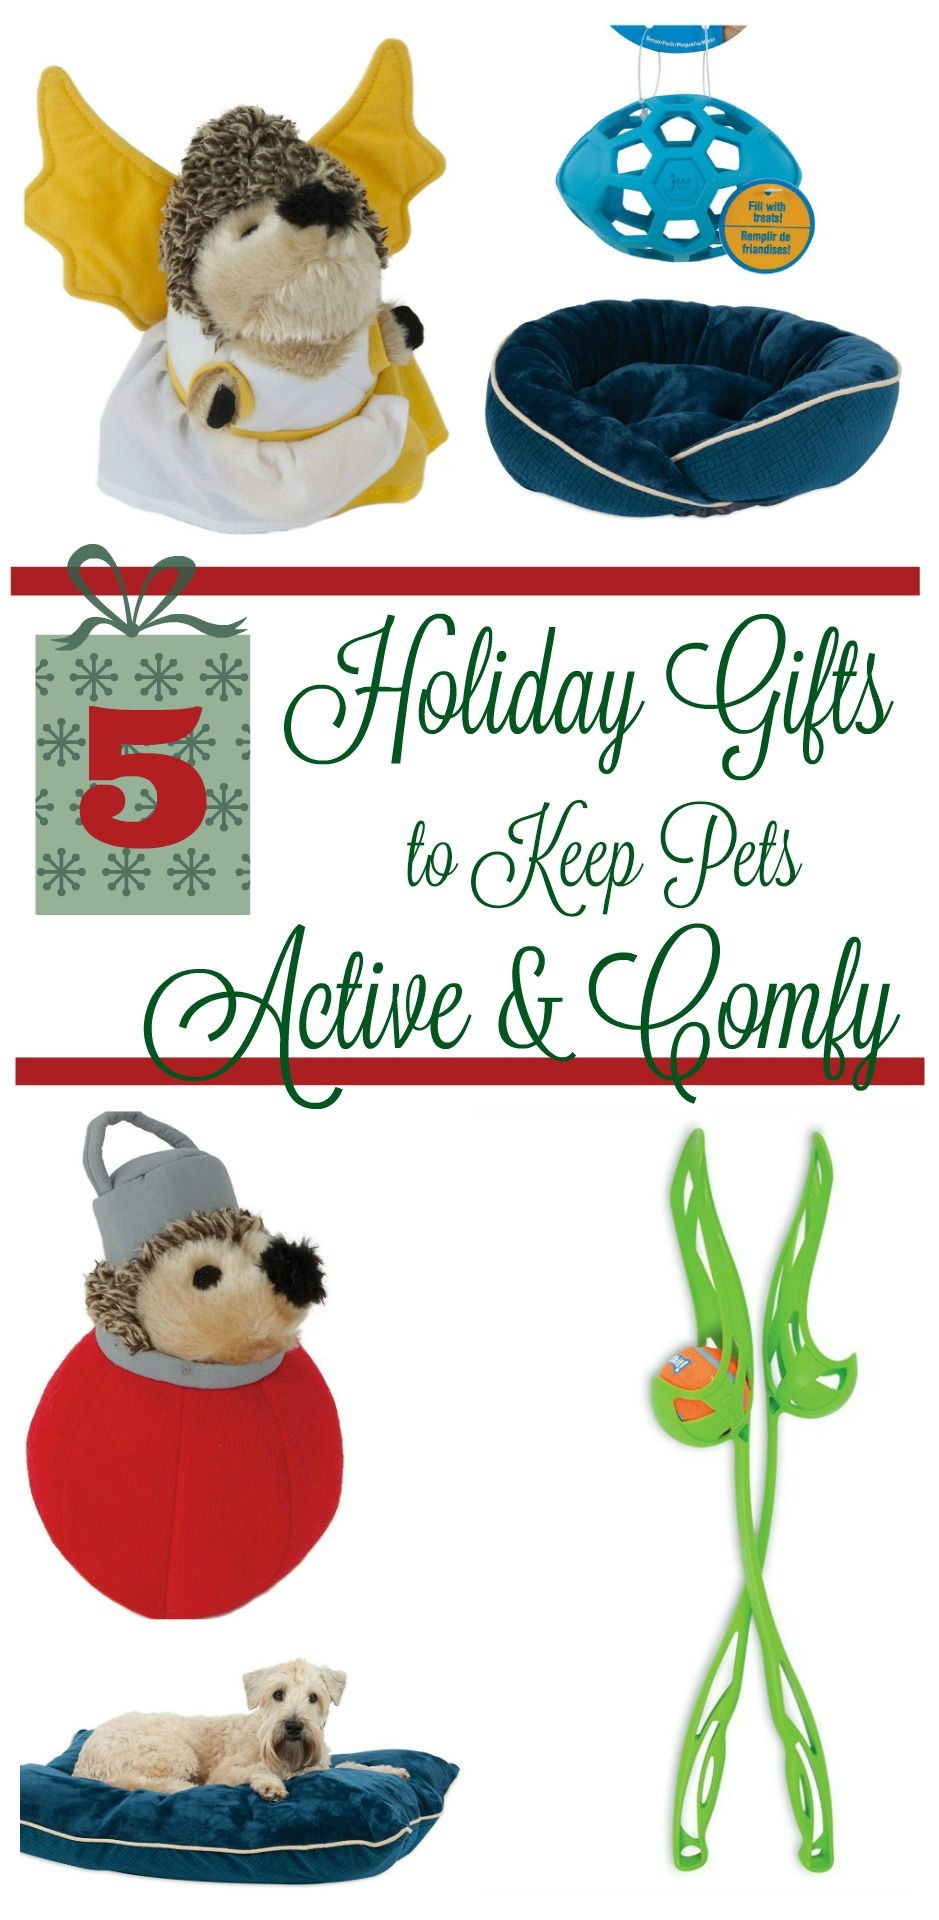 5 Holiday Gifts to Keep Pets Active & Comfy